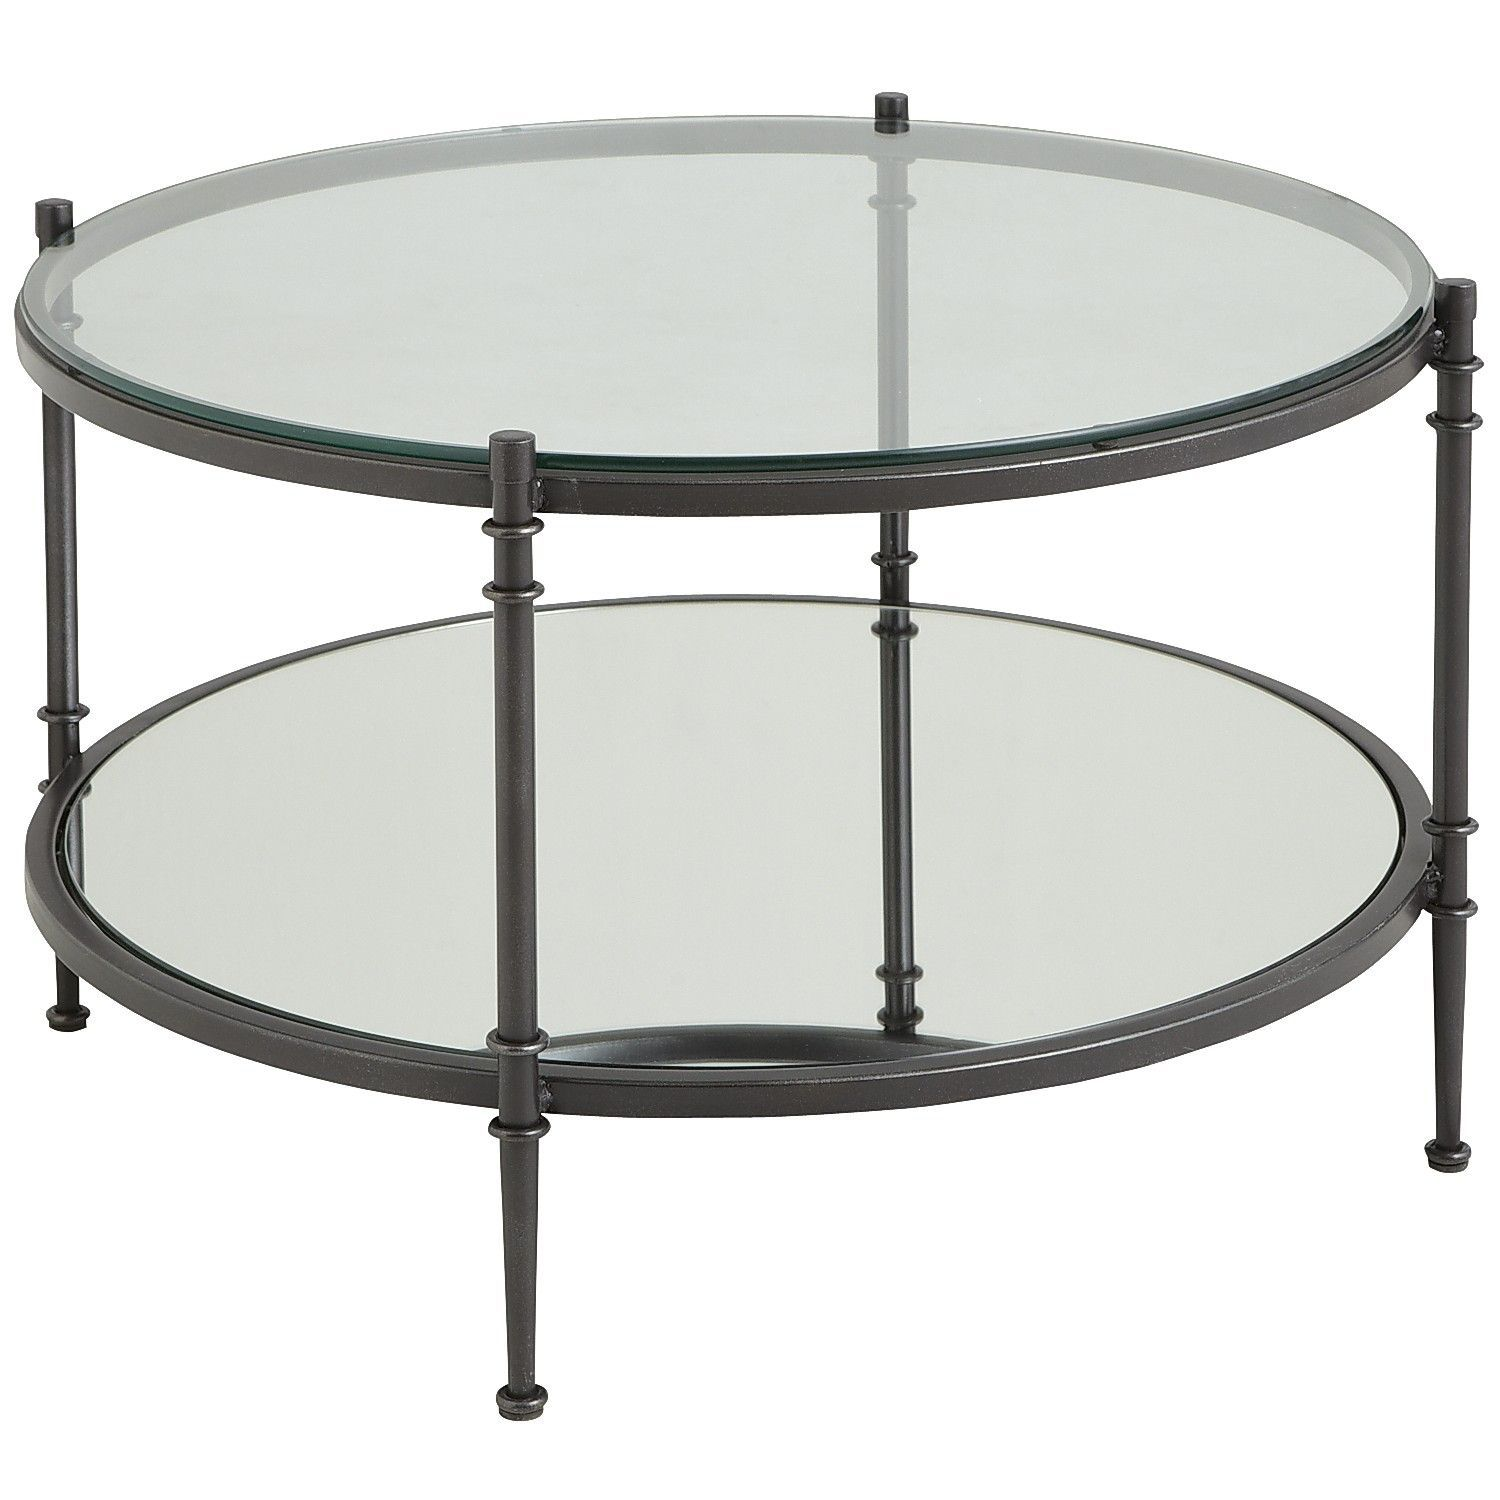 Merveilleux Clara Coffee Table   Gunmetal | Pier 1 Imports